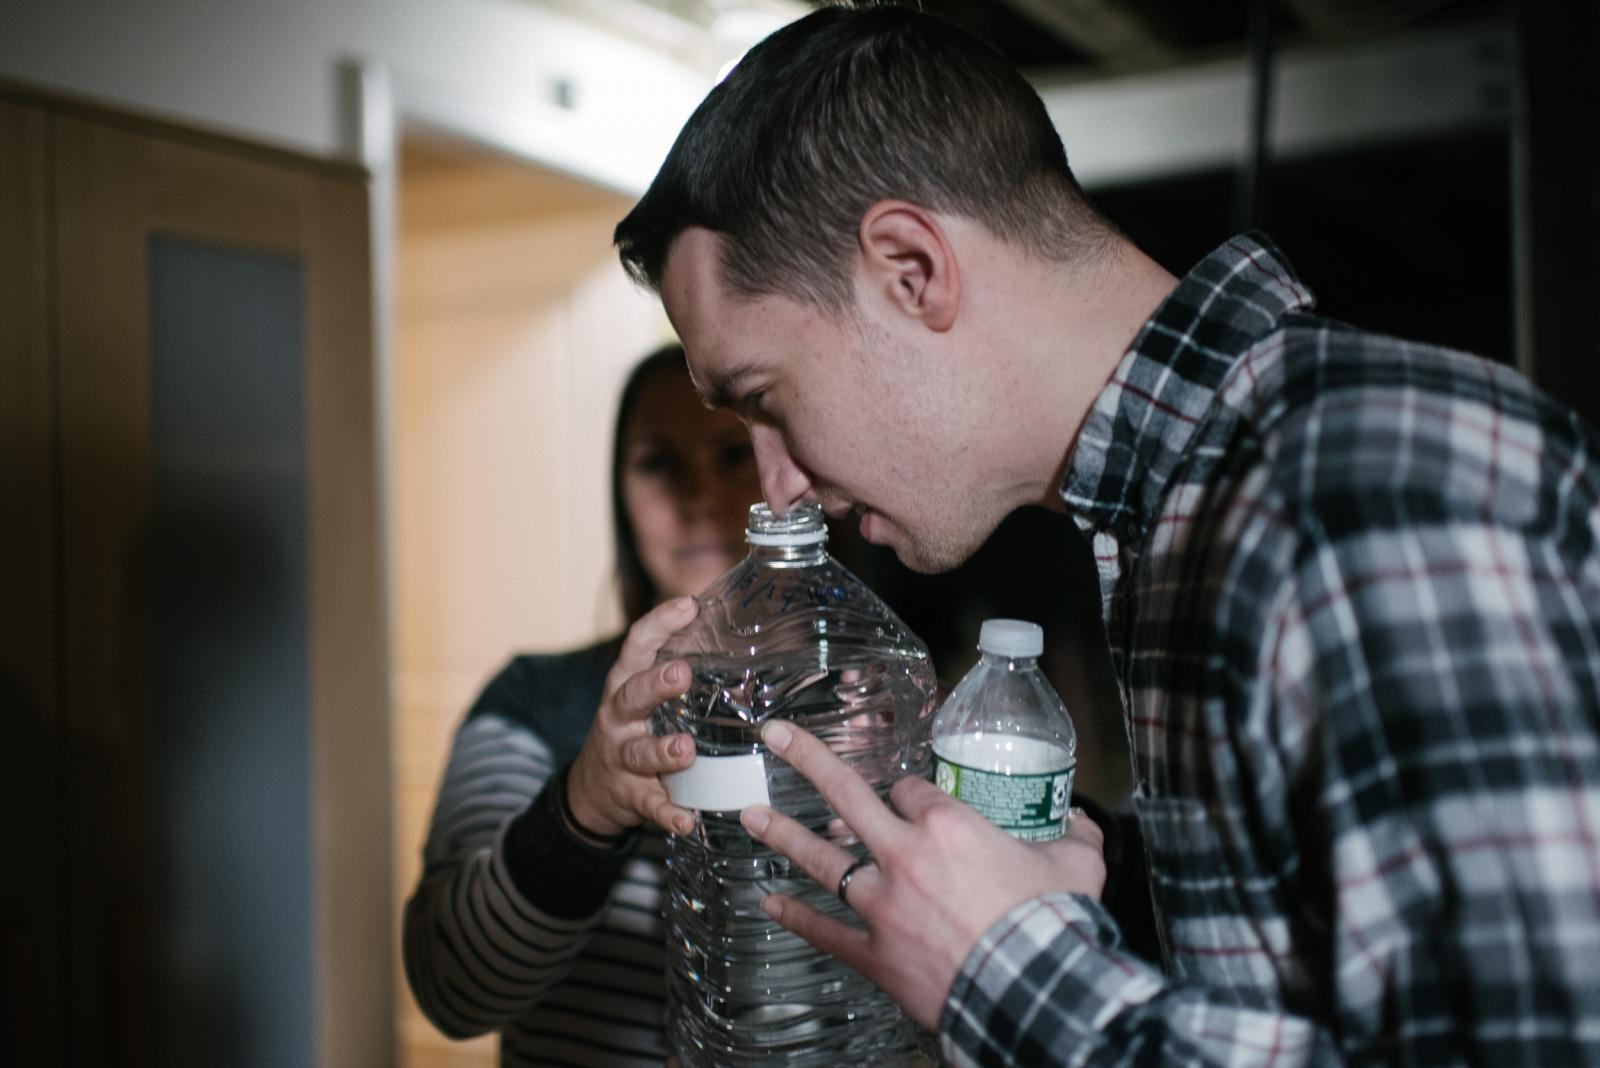 Jon Tarr, 31, smells water that him and his wife, Erica, stored away to get checked at their home in Glen Mills, PA. on Thursday, January 16, 2020. The Tarrs have been dealing with contaminated water since the summer of 2019. They take showers at family and friends� homes and Erica�s brother-in-law brings her water for the water buffalo. Photo by Hannah Yoon